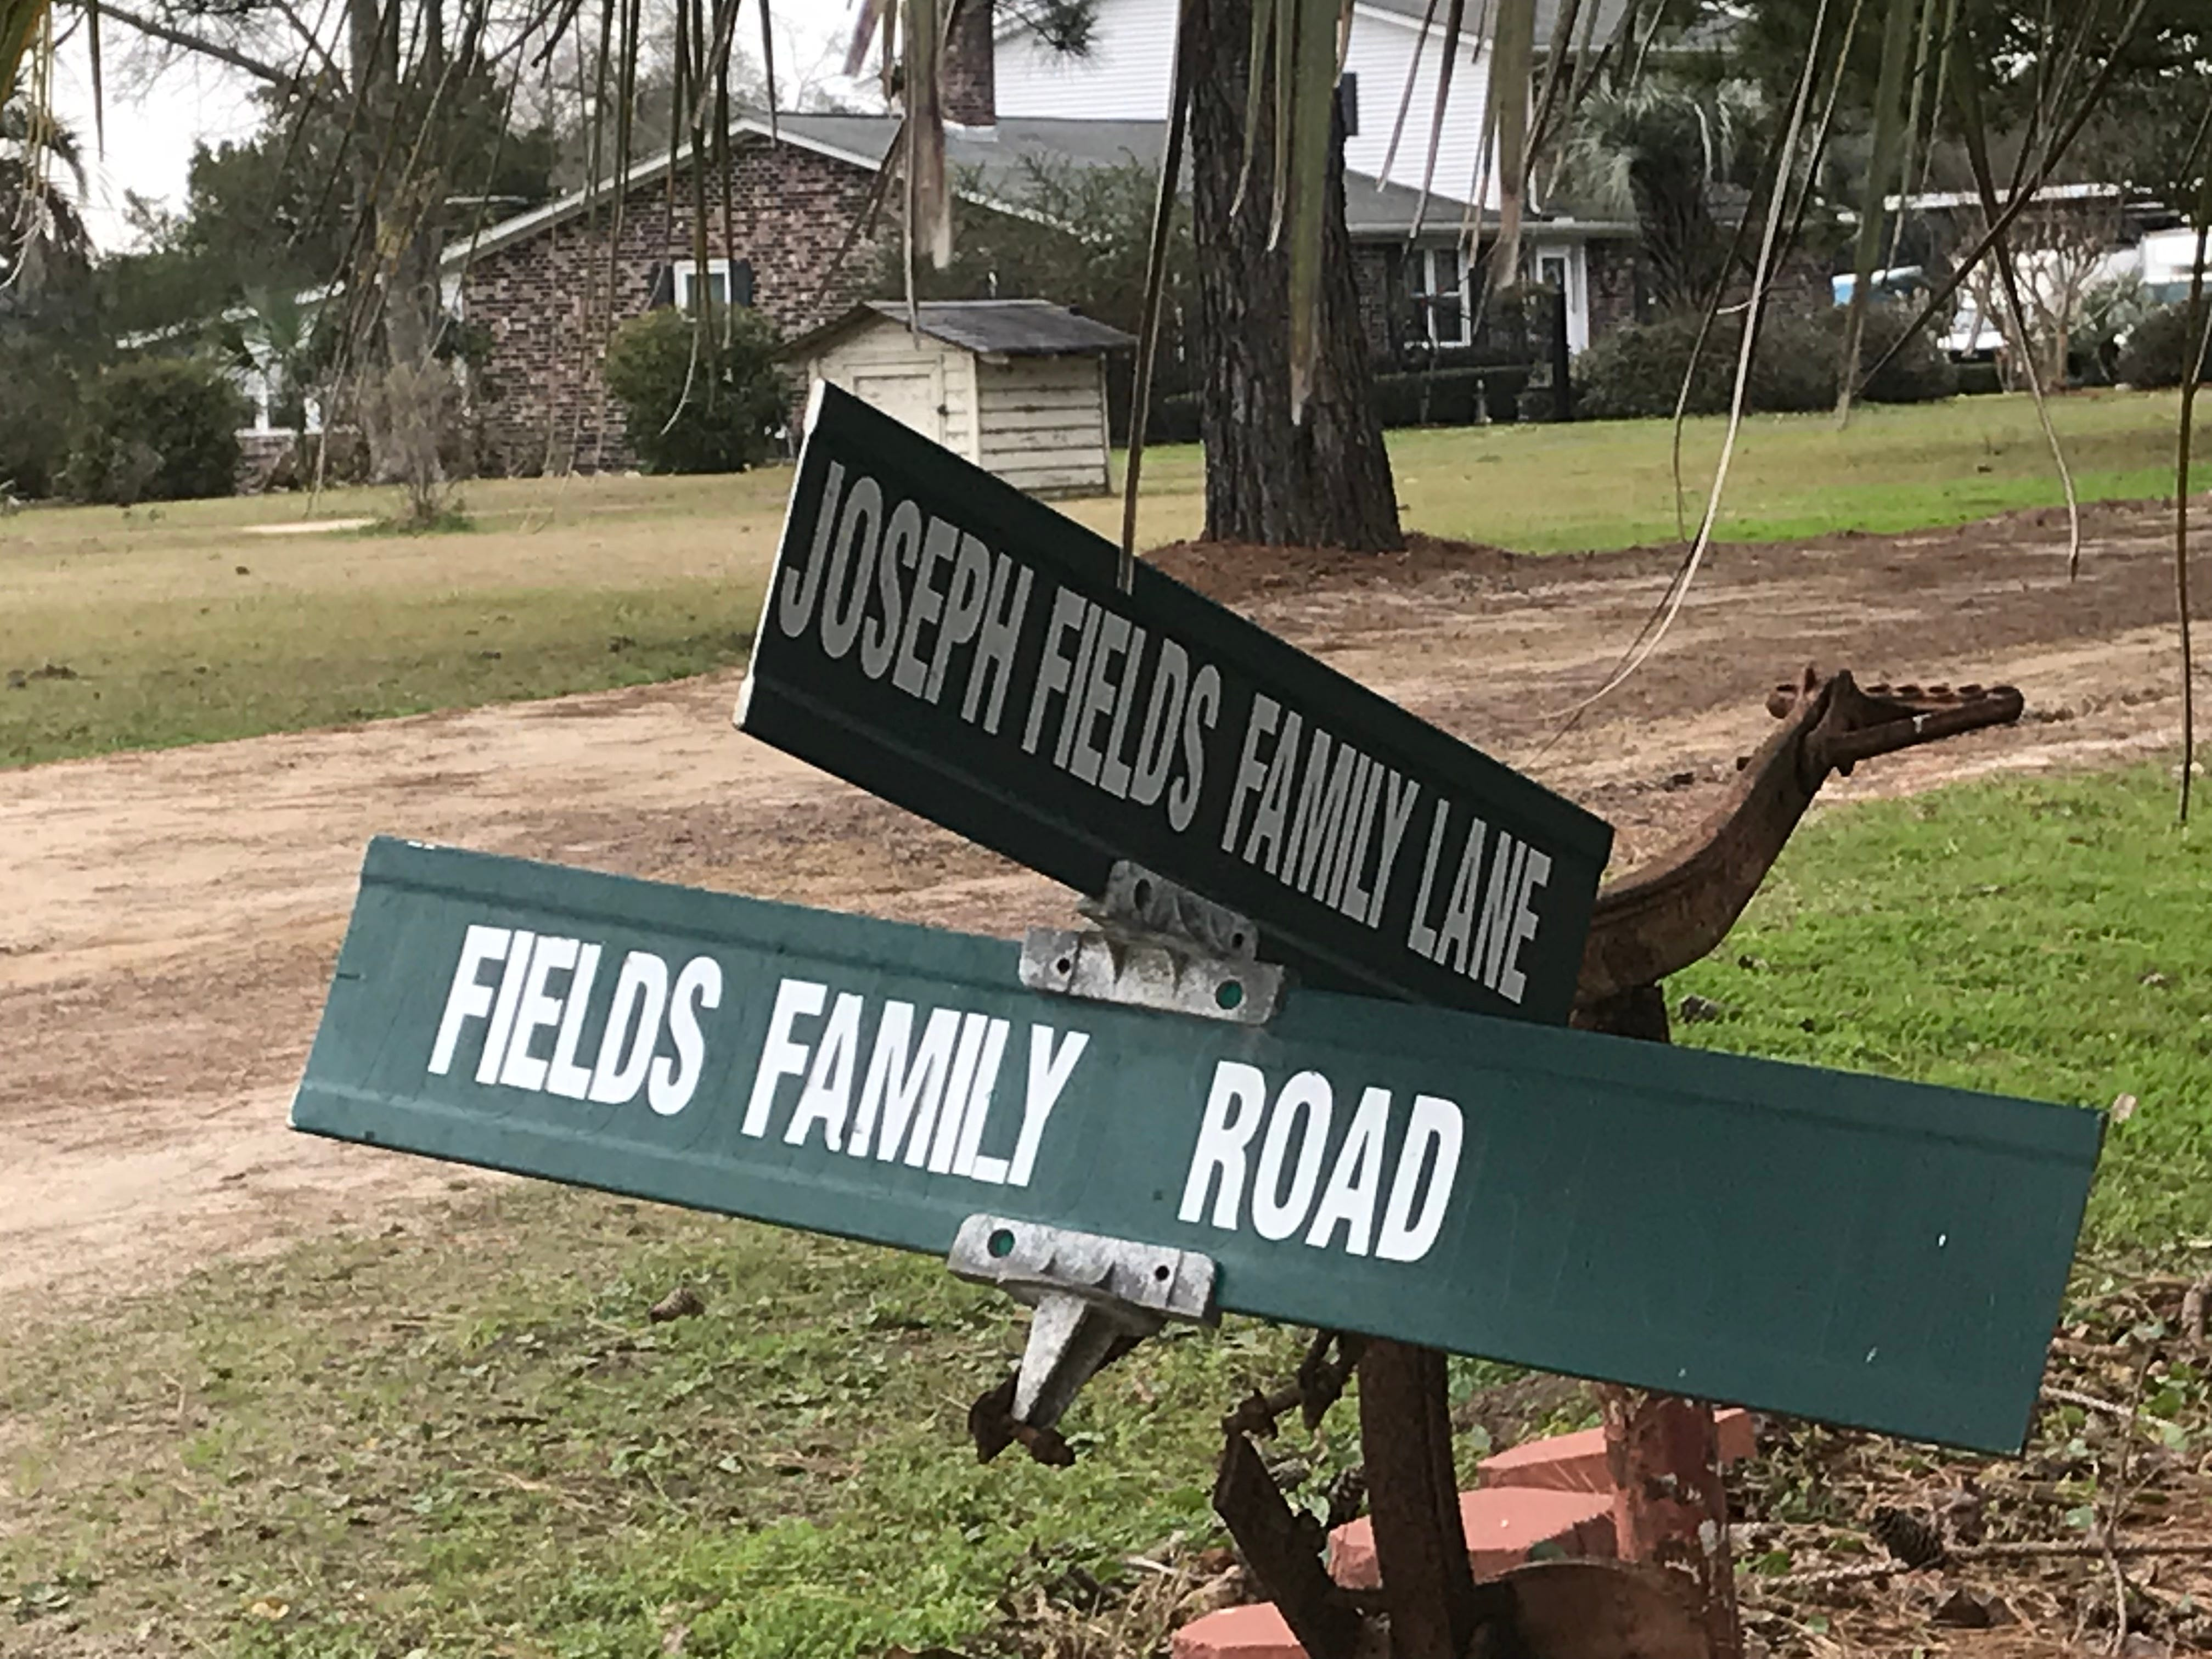 A sign at Joseph Fields Farm on John's Island, S.C.